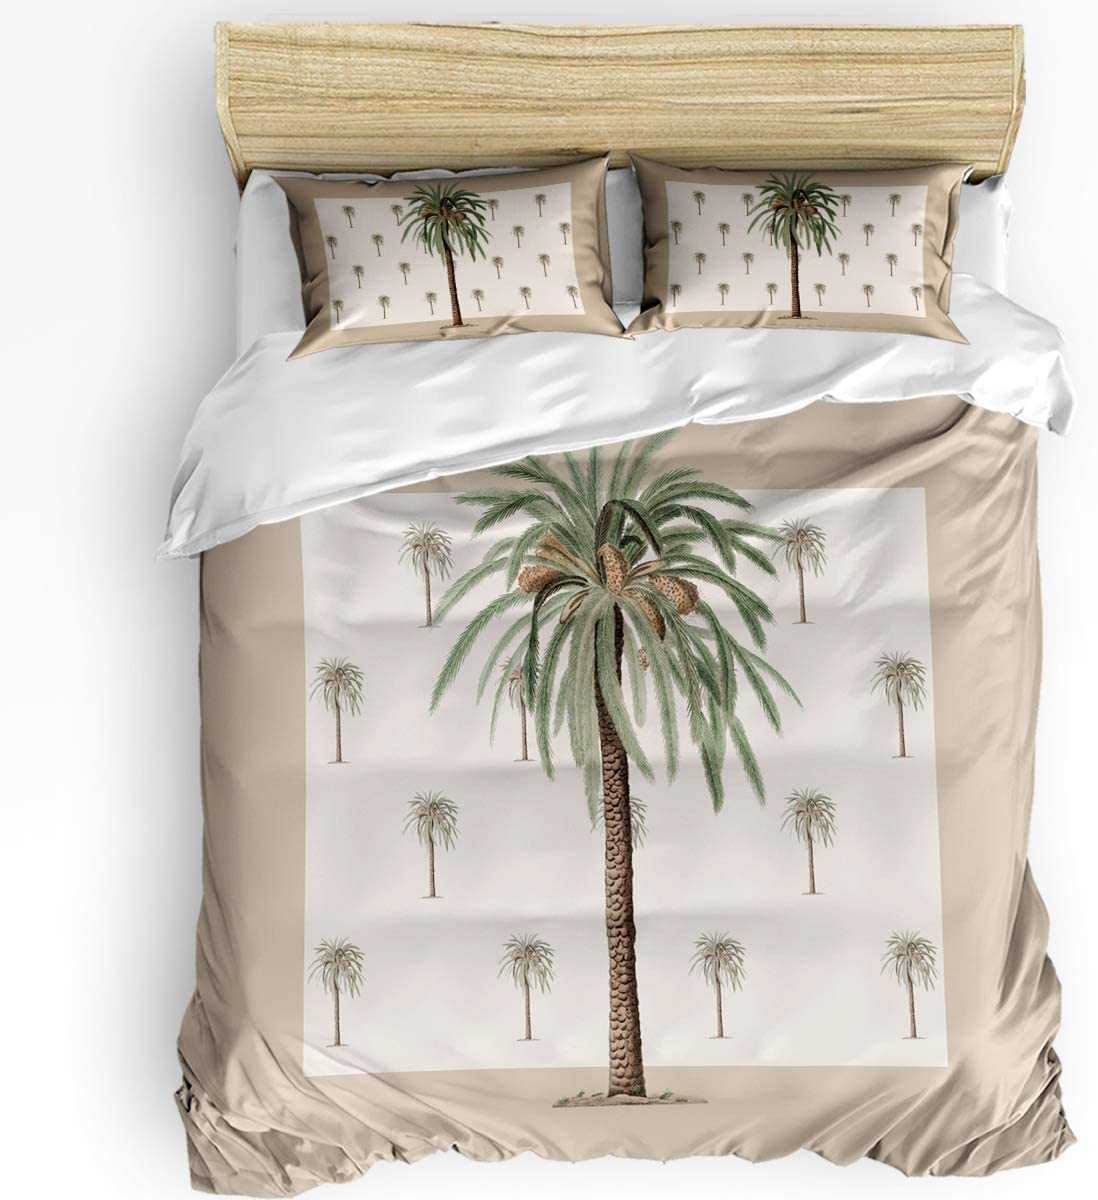 Teather Max 42% OFF 3-Piece Bedding Sets Coco Tree Cov Duvet Comforter It is very popular Set -